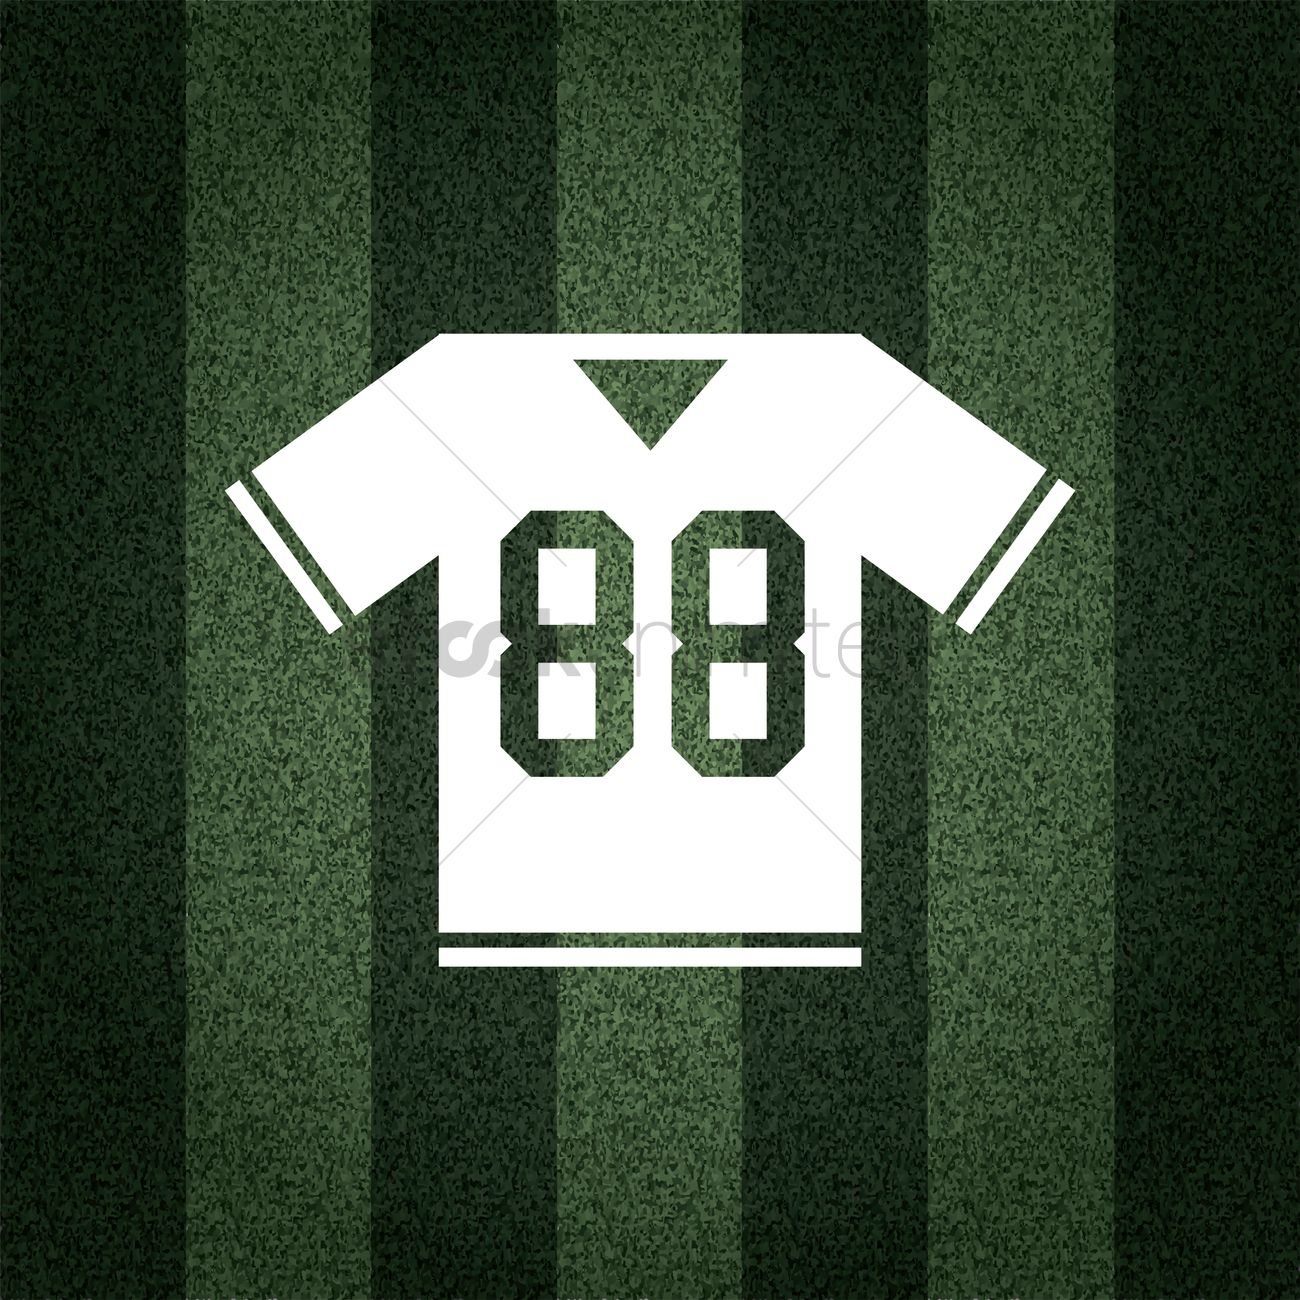 free american football jersey on striped background vector image